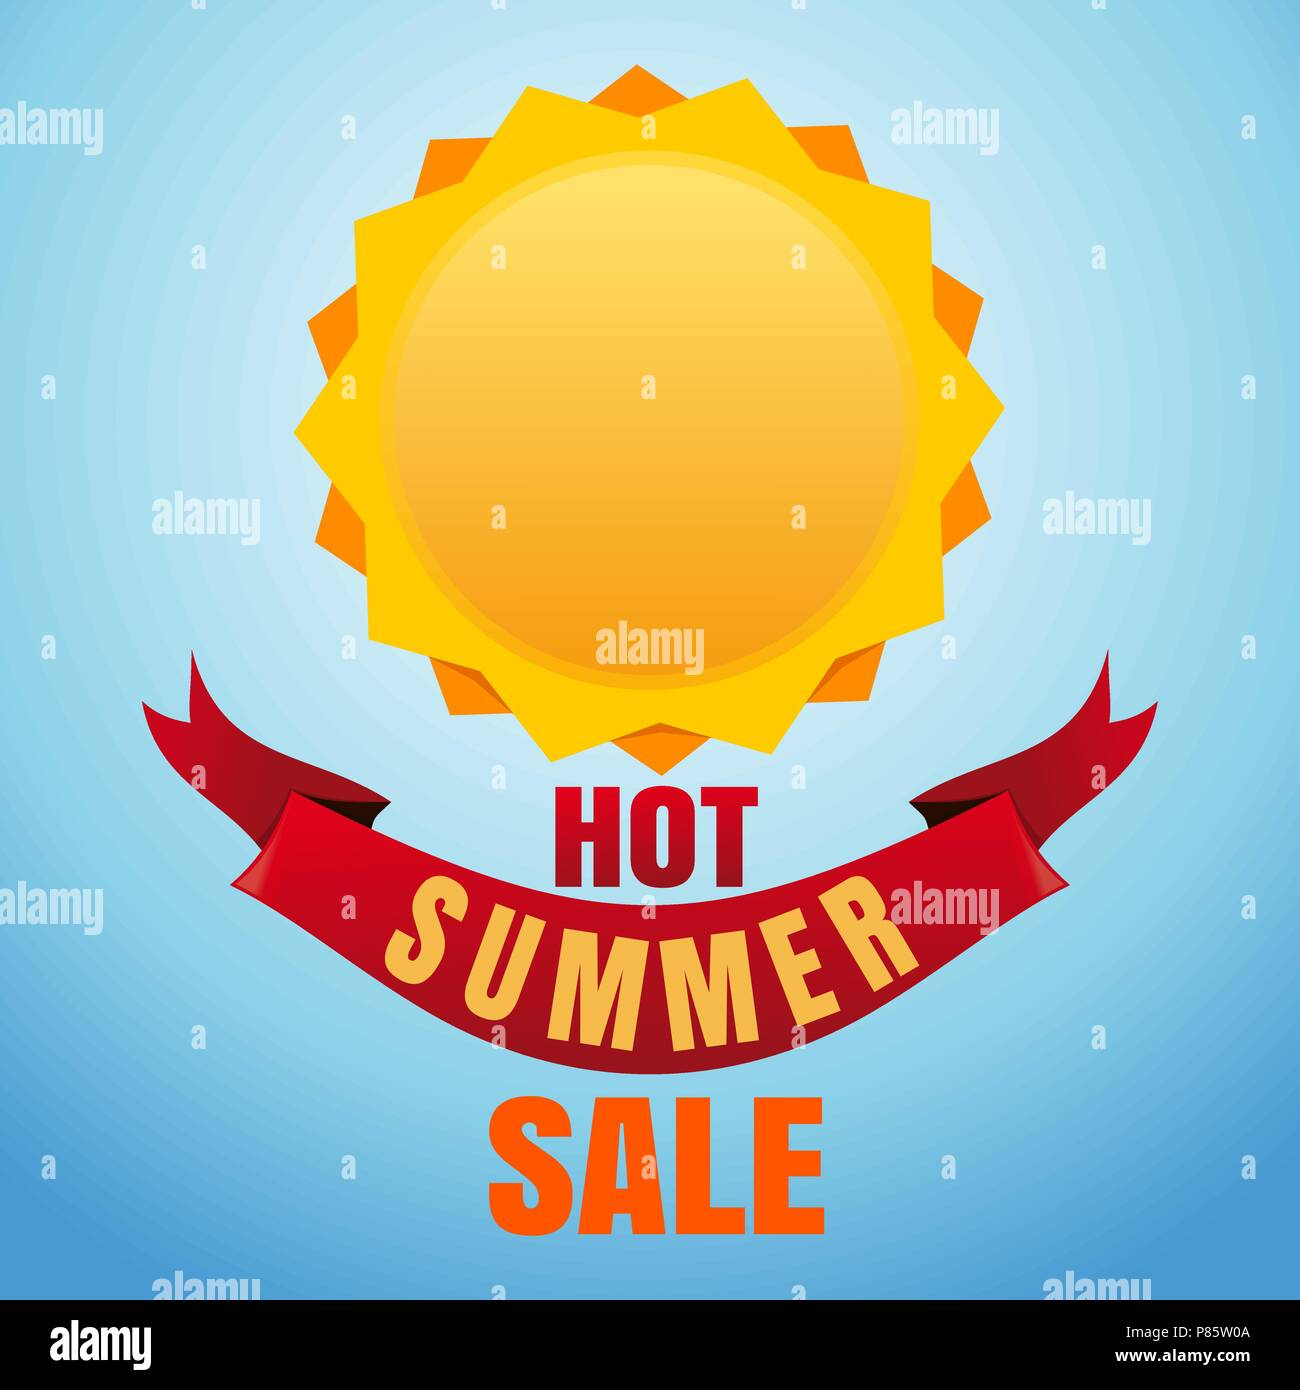 Hot summer sale  Sun logo icon and lettering on a blue